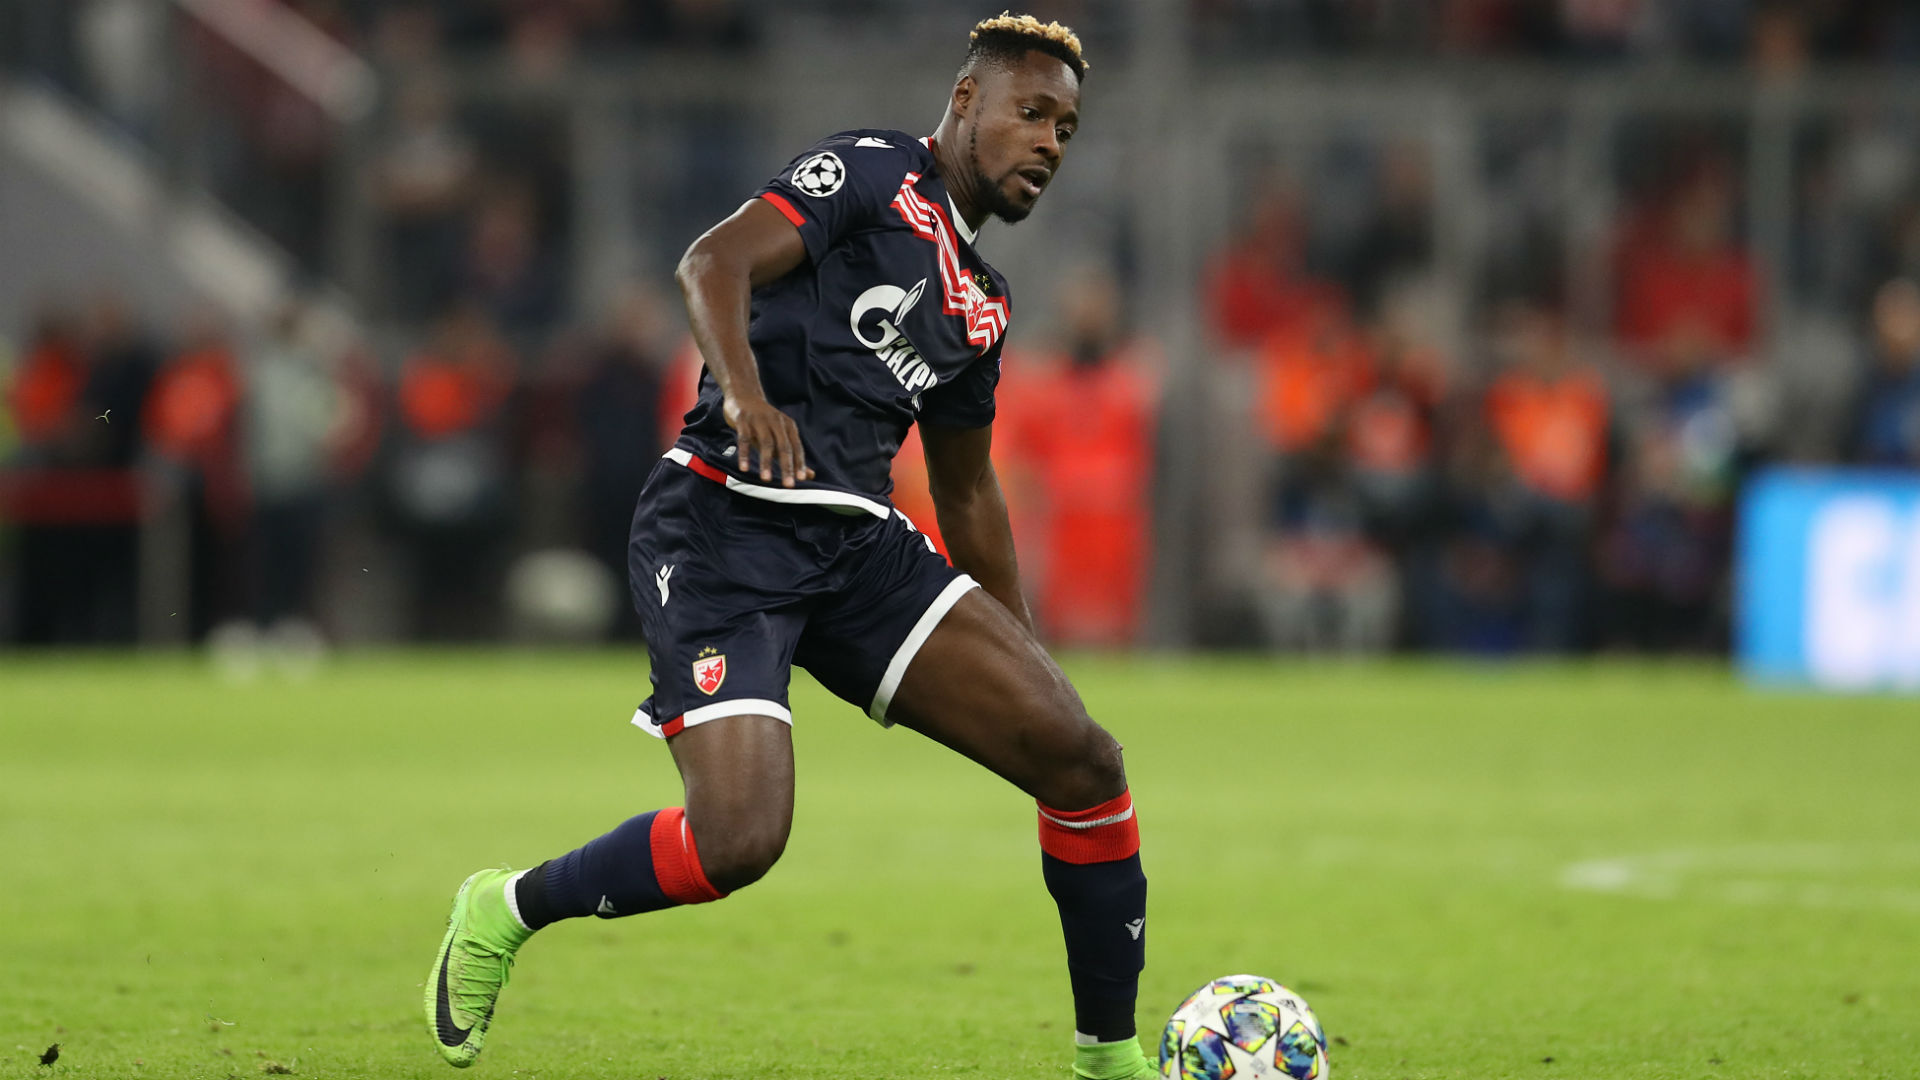 Boakye warns Tottenham Hotspur ahead of Champions League clash with Red Star Belgrade